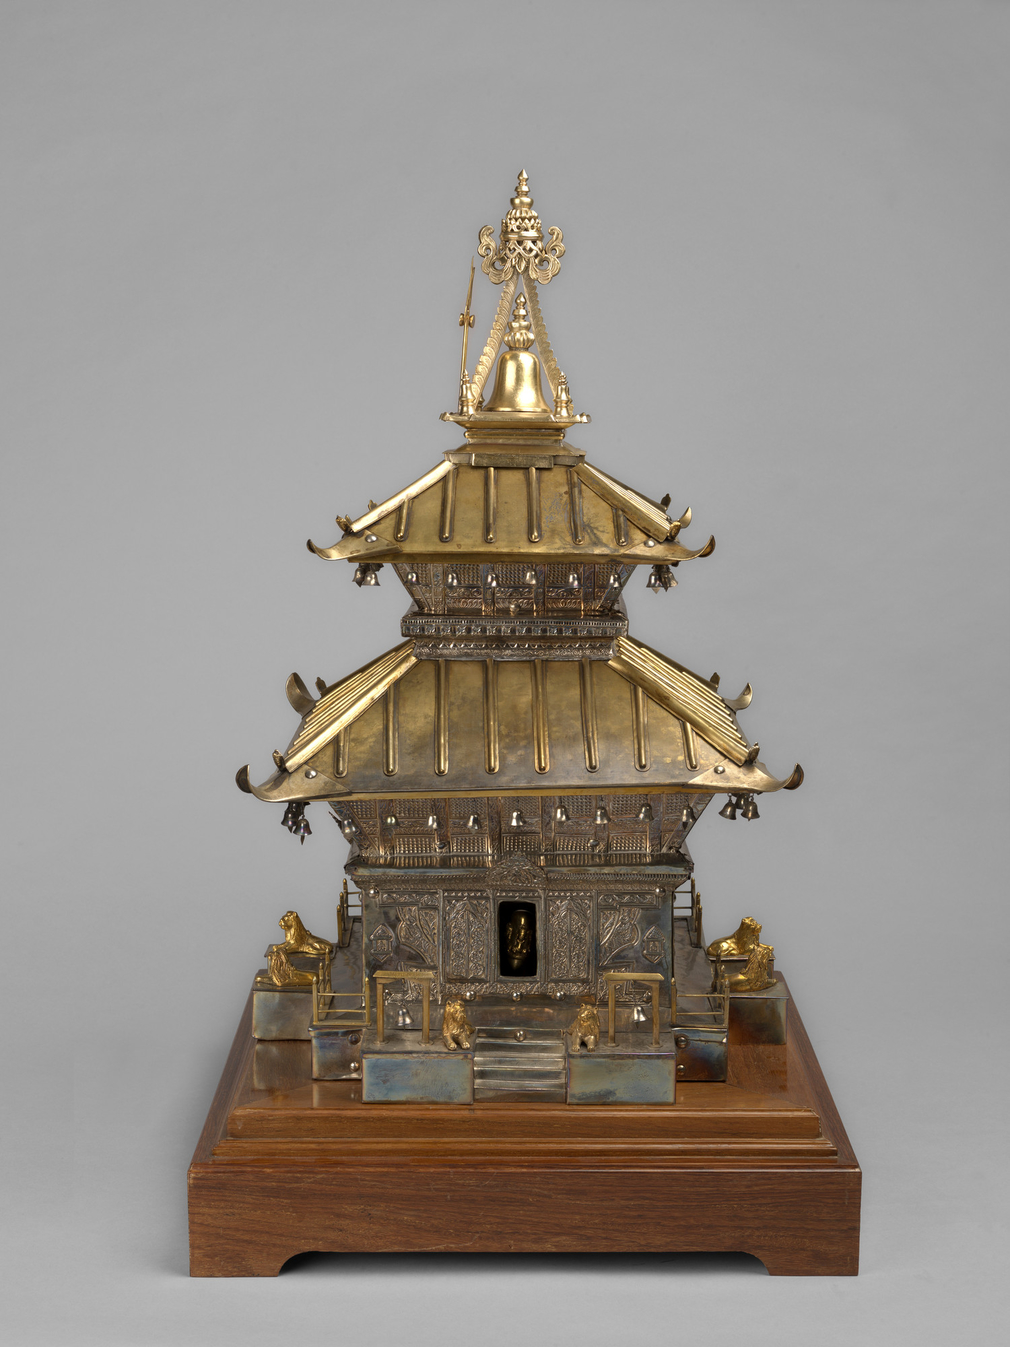 A model of a silver temple of Pashupati Nath in gilt-metal fixed to a square wooded stand. Two pagoda-style roofs with suspended bells, a pair of lions at each of the four doorways. Walls embossed with Eastern patterns.